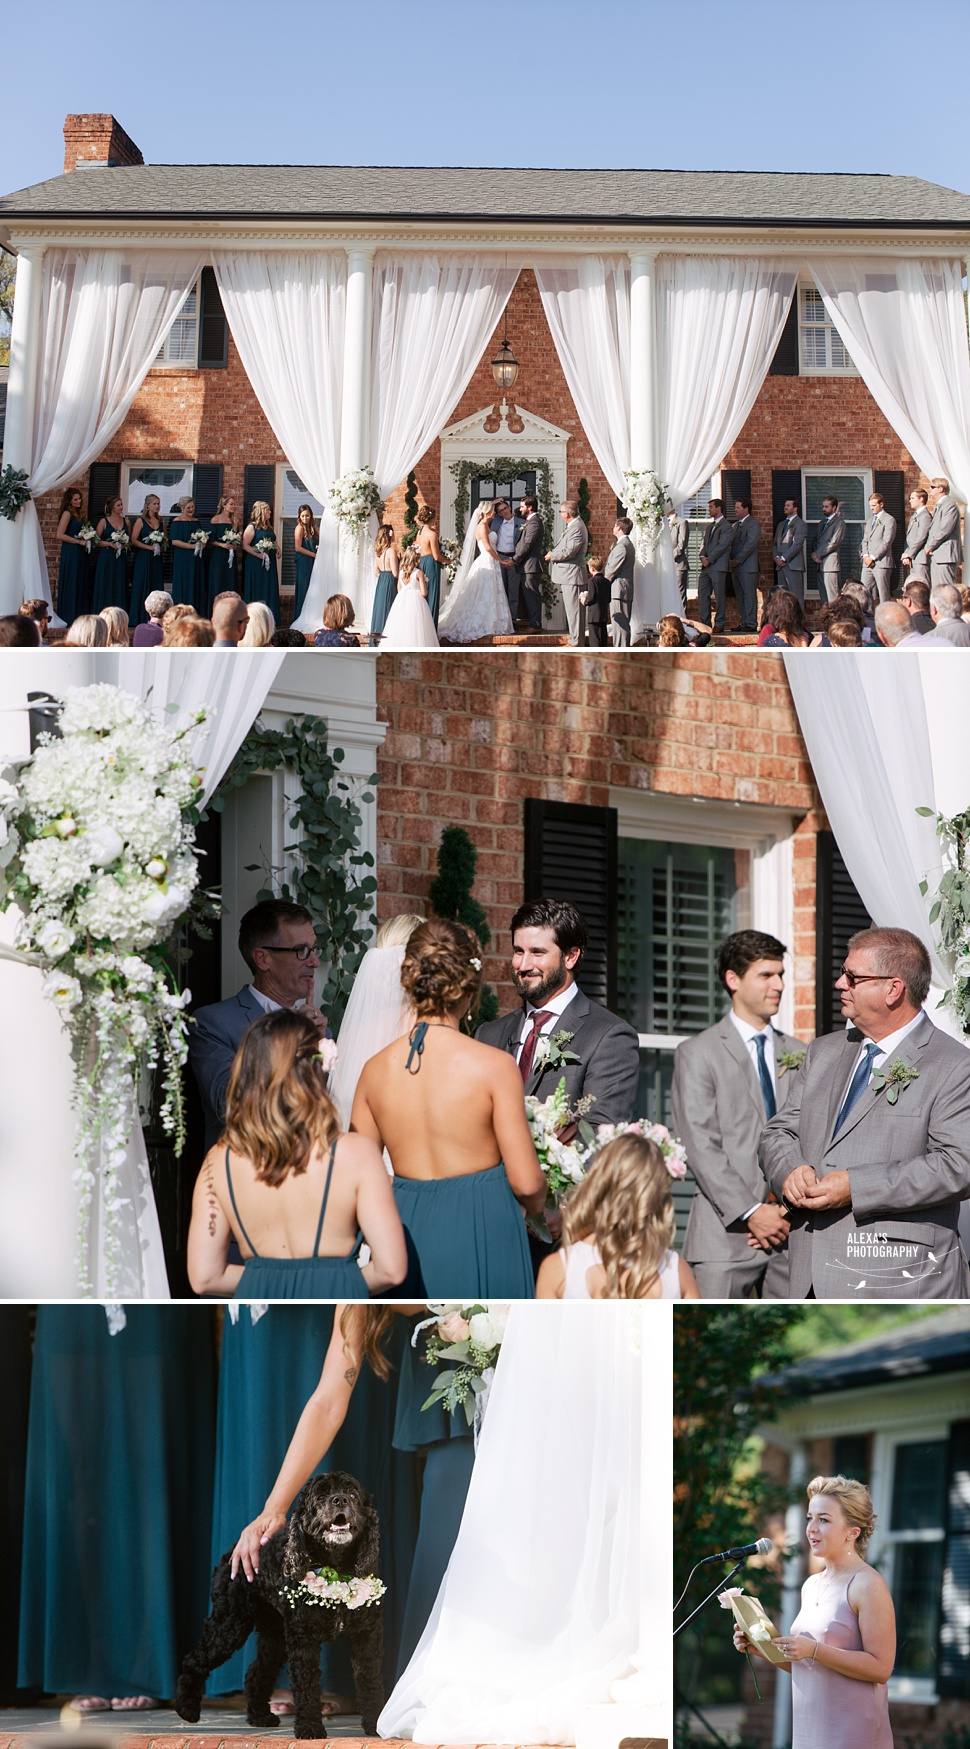 MeganDaniel-charlotte-wedding_013